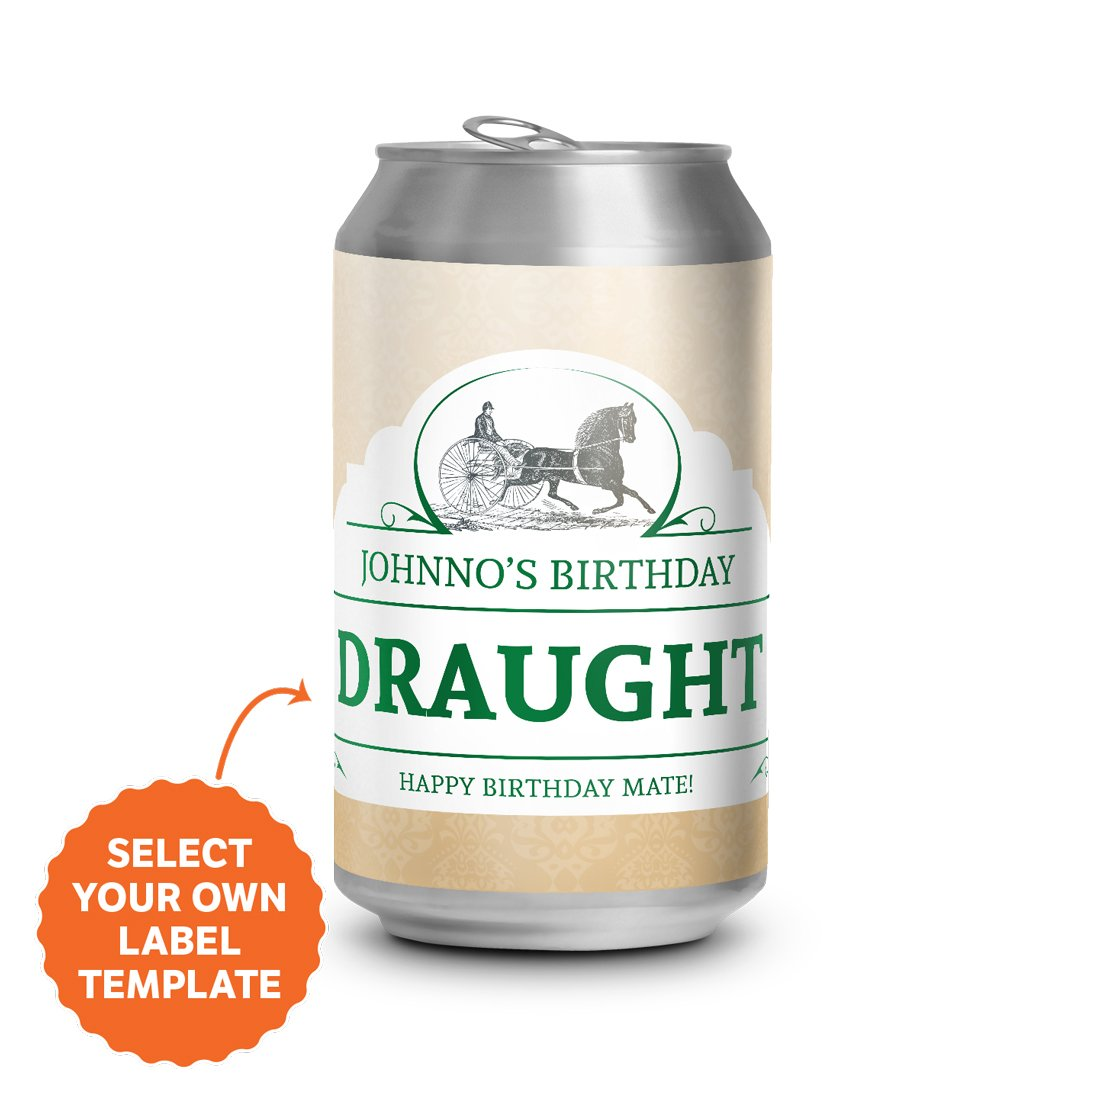 Draught Cans 4.6% - 375ml - Carton of 24